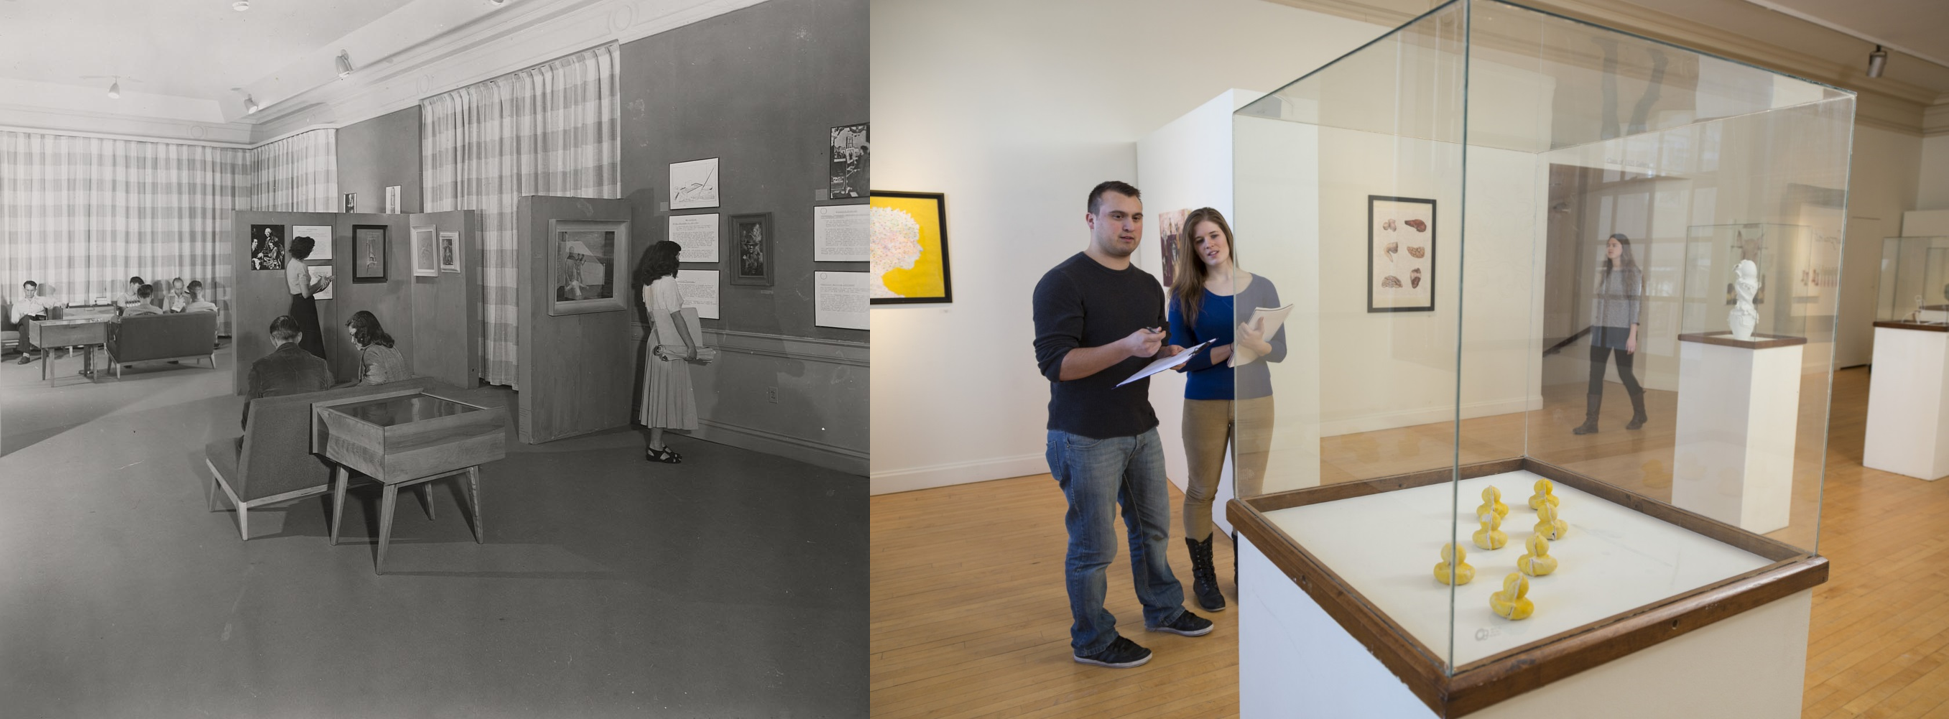 Left: Students wander through the Memorial Union art gallery circa 1950. Right: Students avoid a blustery fall day with a stroll through the Memorial Union art gallery.